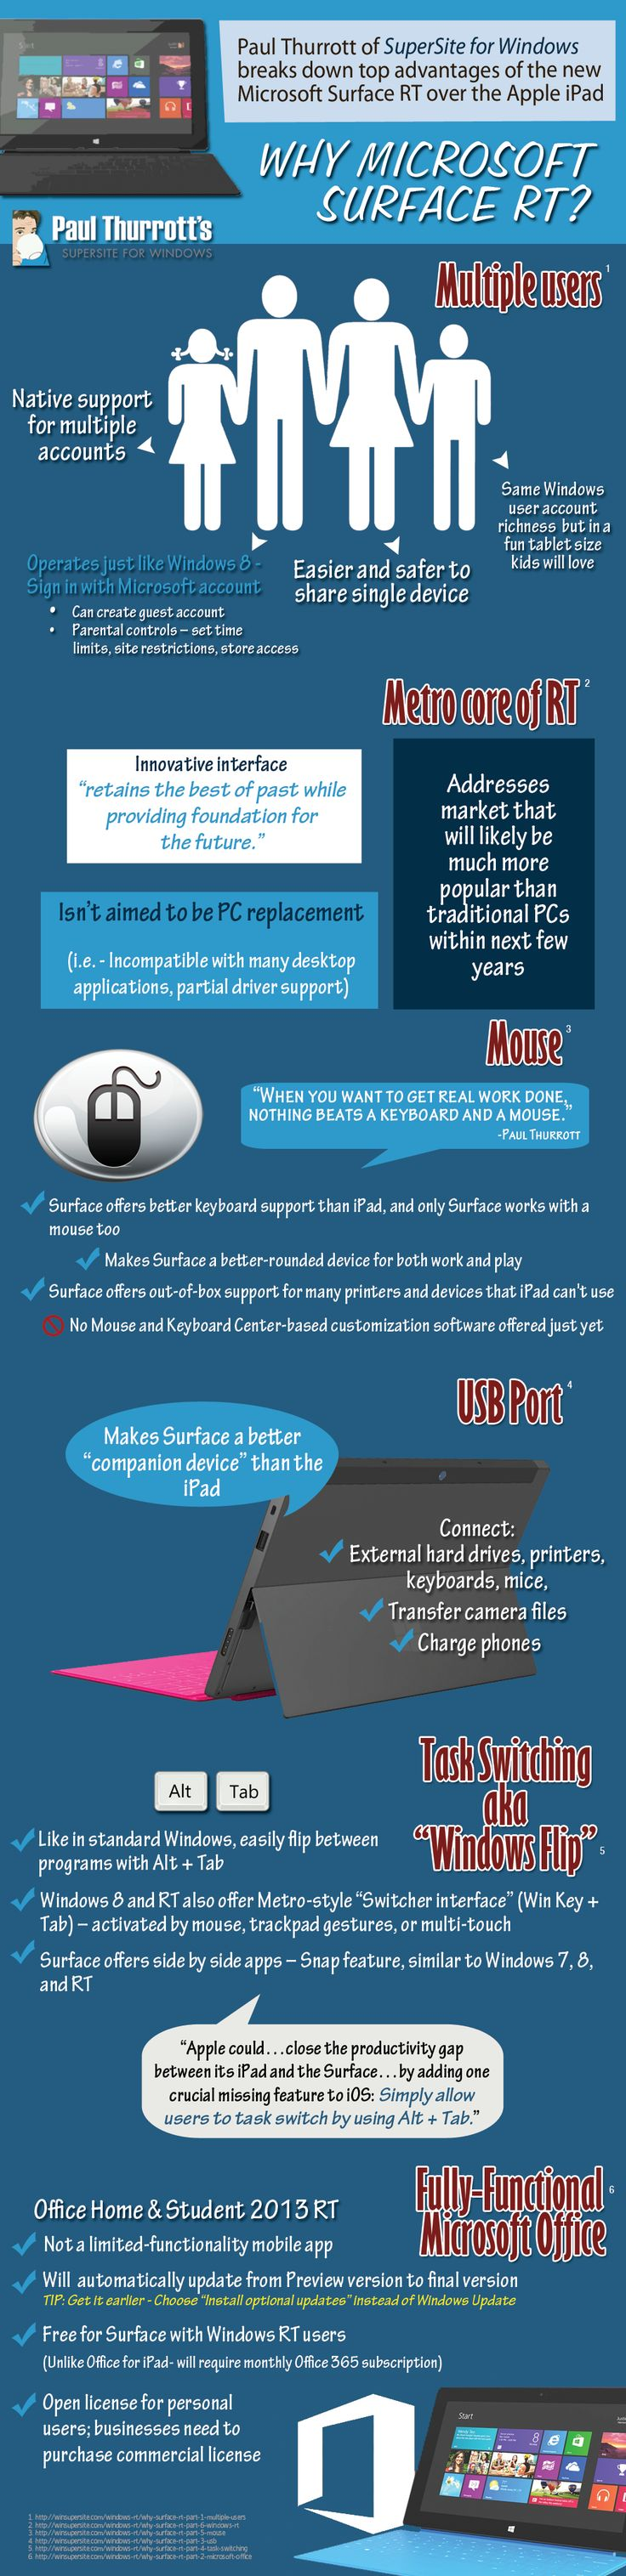 Why Microsoft Surface RT? #infographic